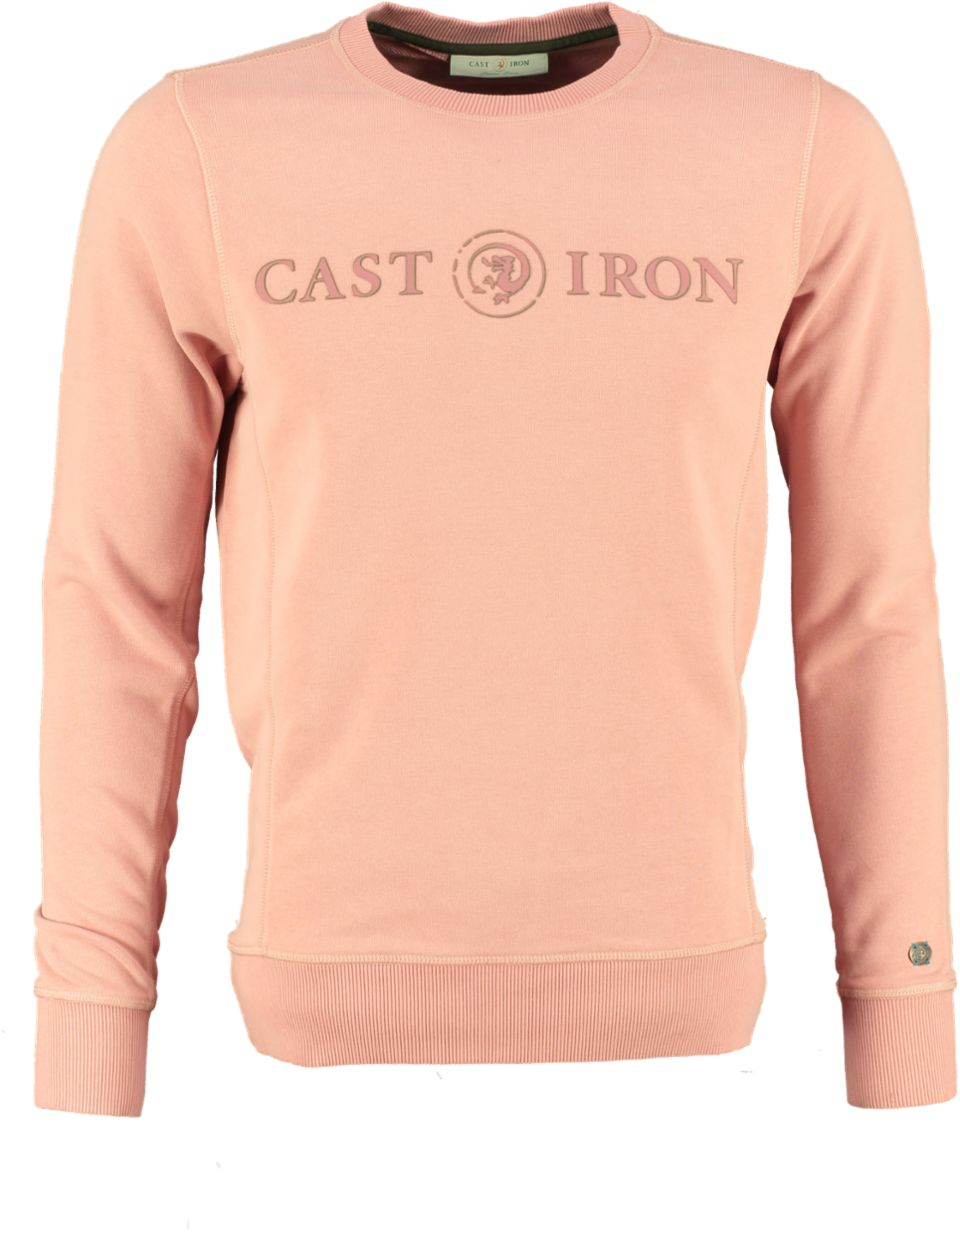 Cast Iron sweater